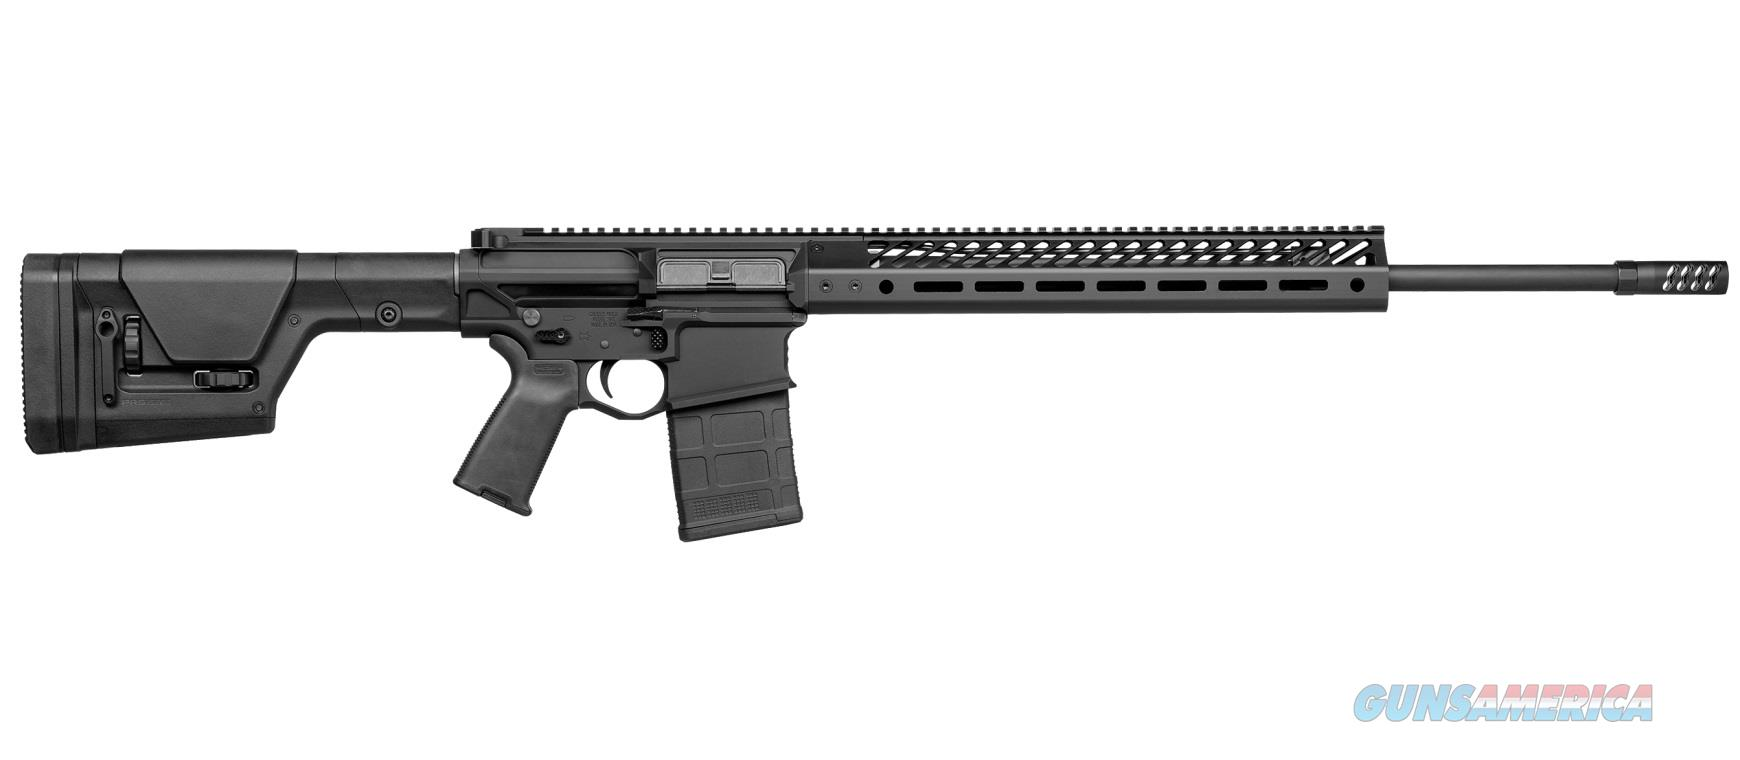 "Seekins Precision SP10 6.5 Creedmoor 22"" Barrel 15"" SP3R Handguard ATC Comp MagPul PRS Gen 3 Stock *NEW*  Guns > Rifles > Tactical/Sniper Rifles"